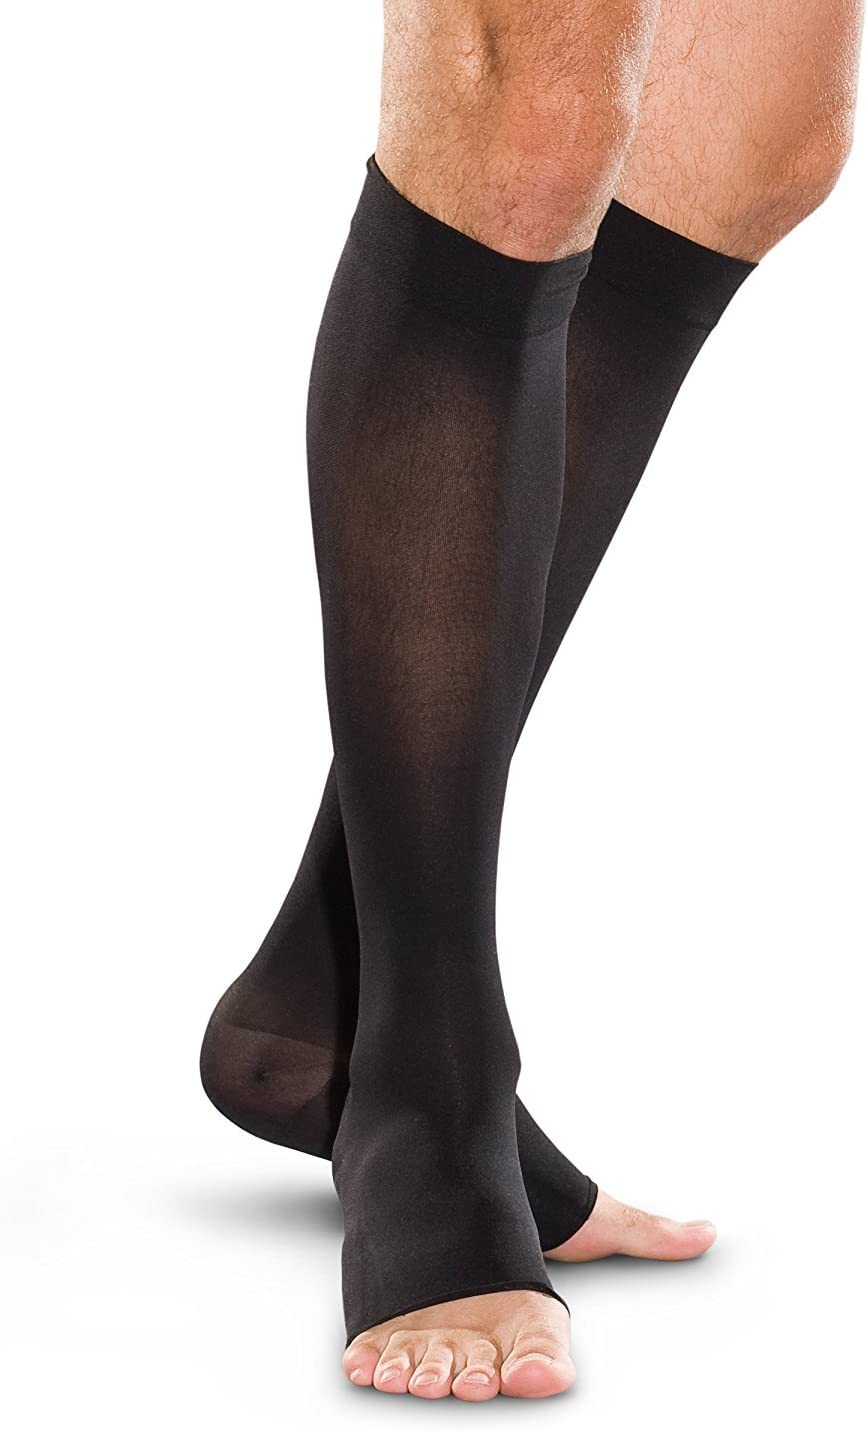 Therafirm Open Toe Knee High Stockings Sand Xl 20 30mmhg Moderate Compression Support Nylons